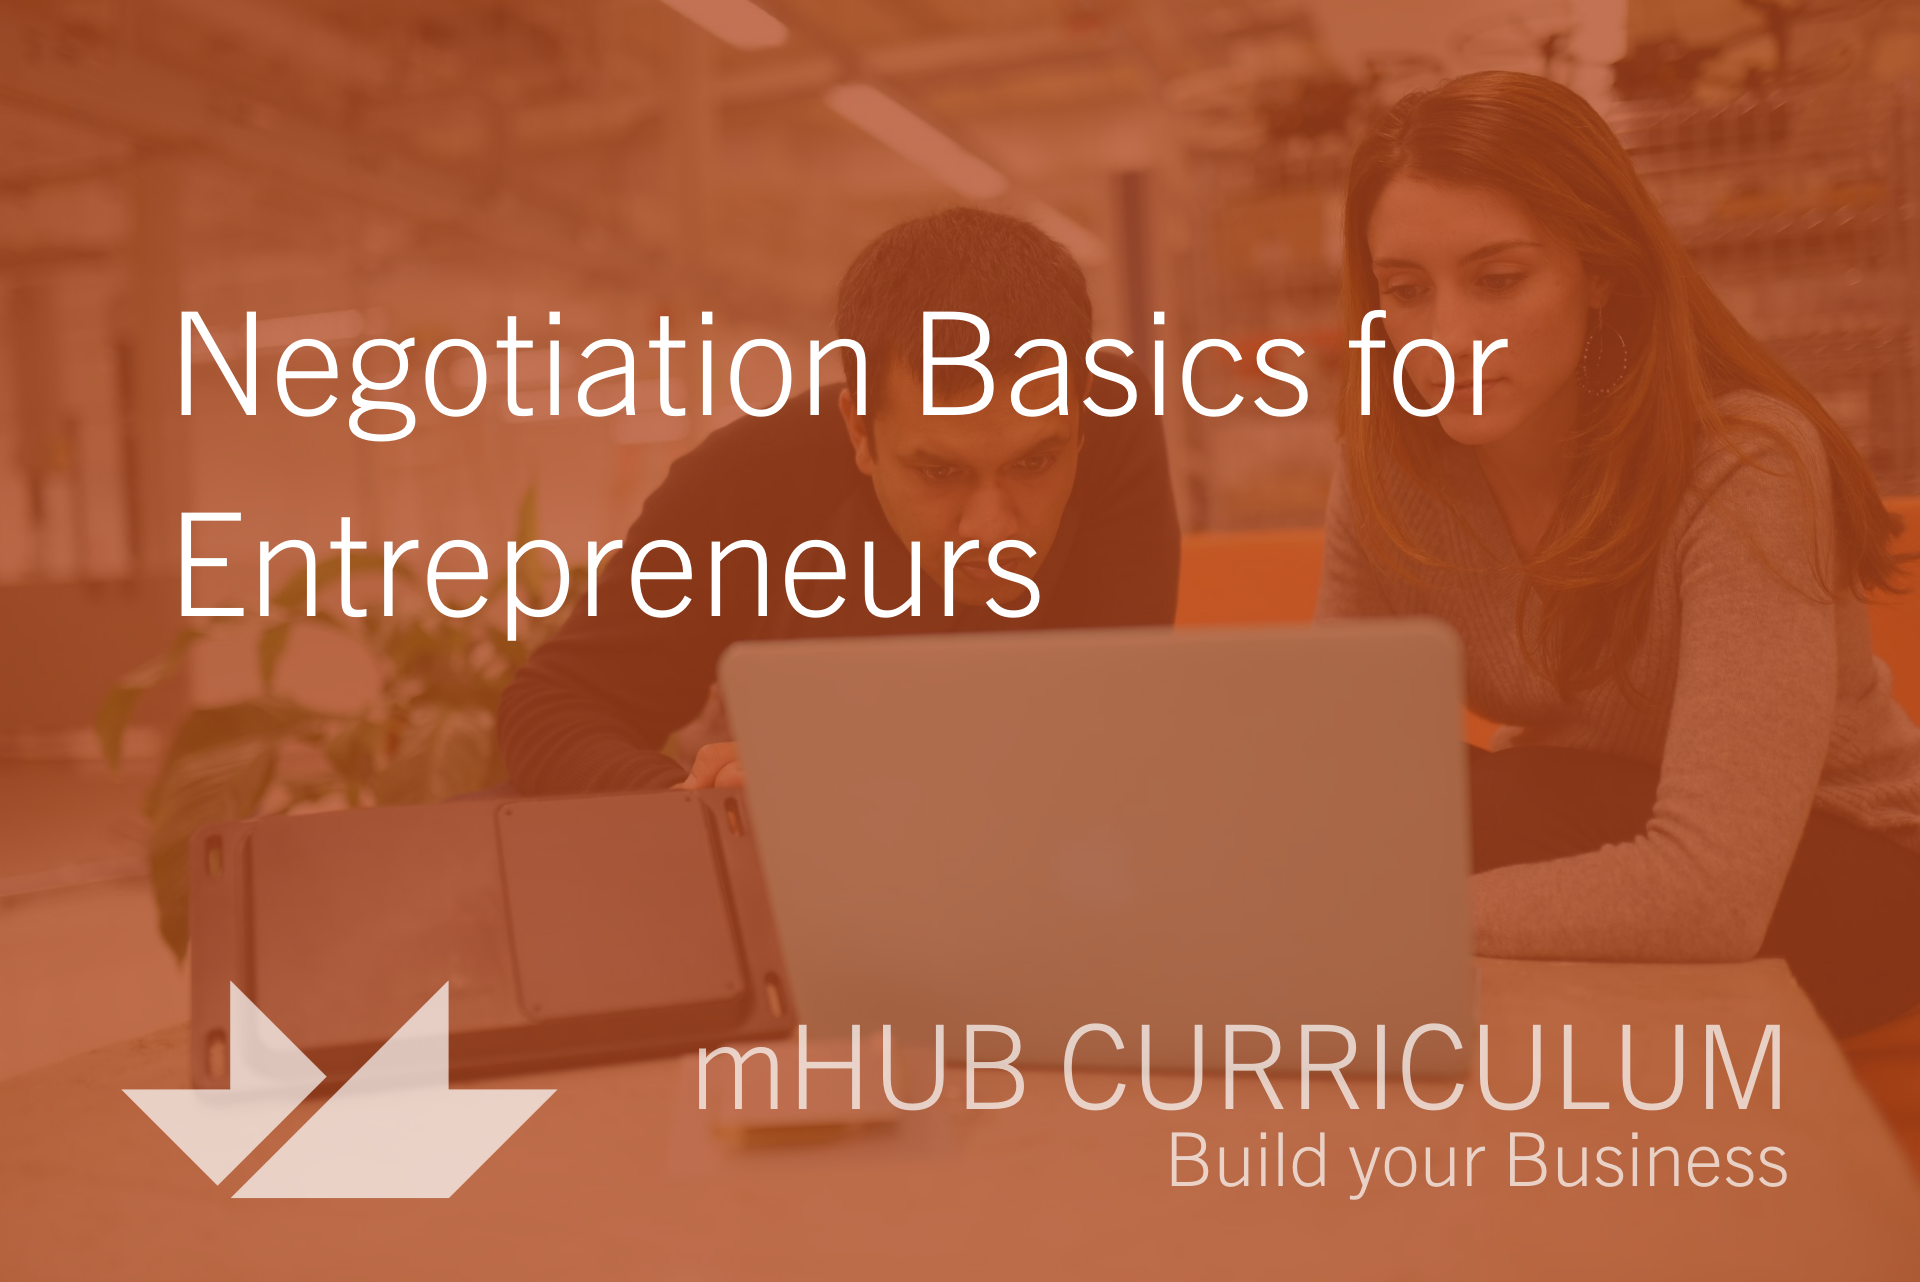 Negotiation Basics for Entrepreneurs